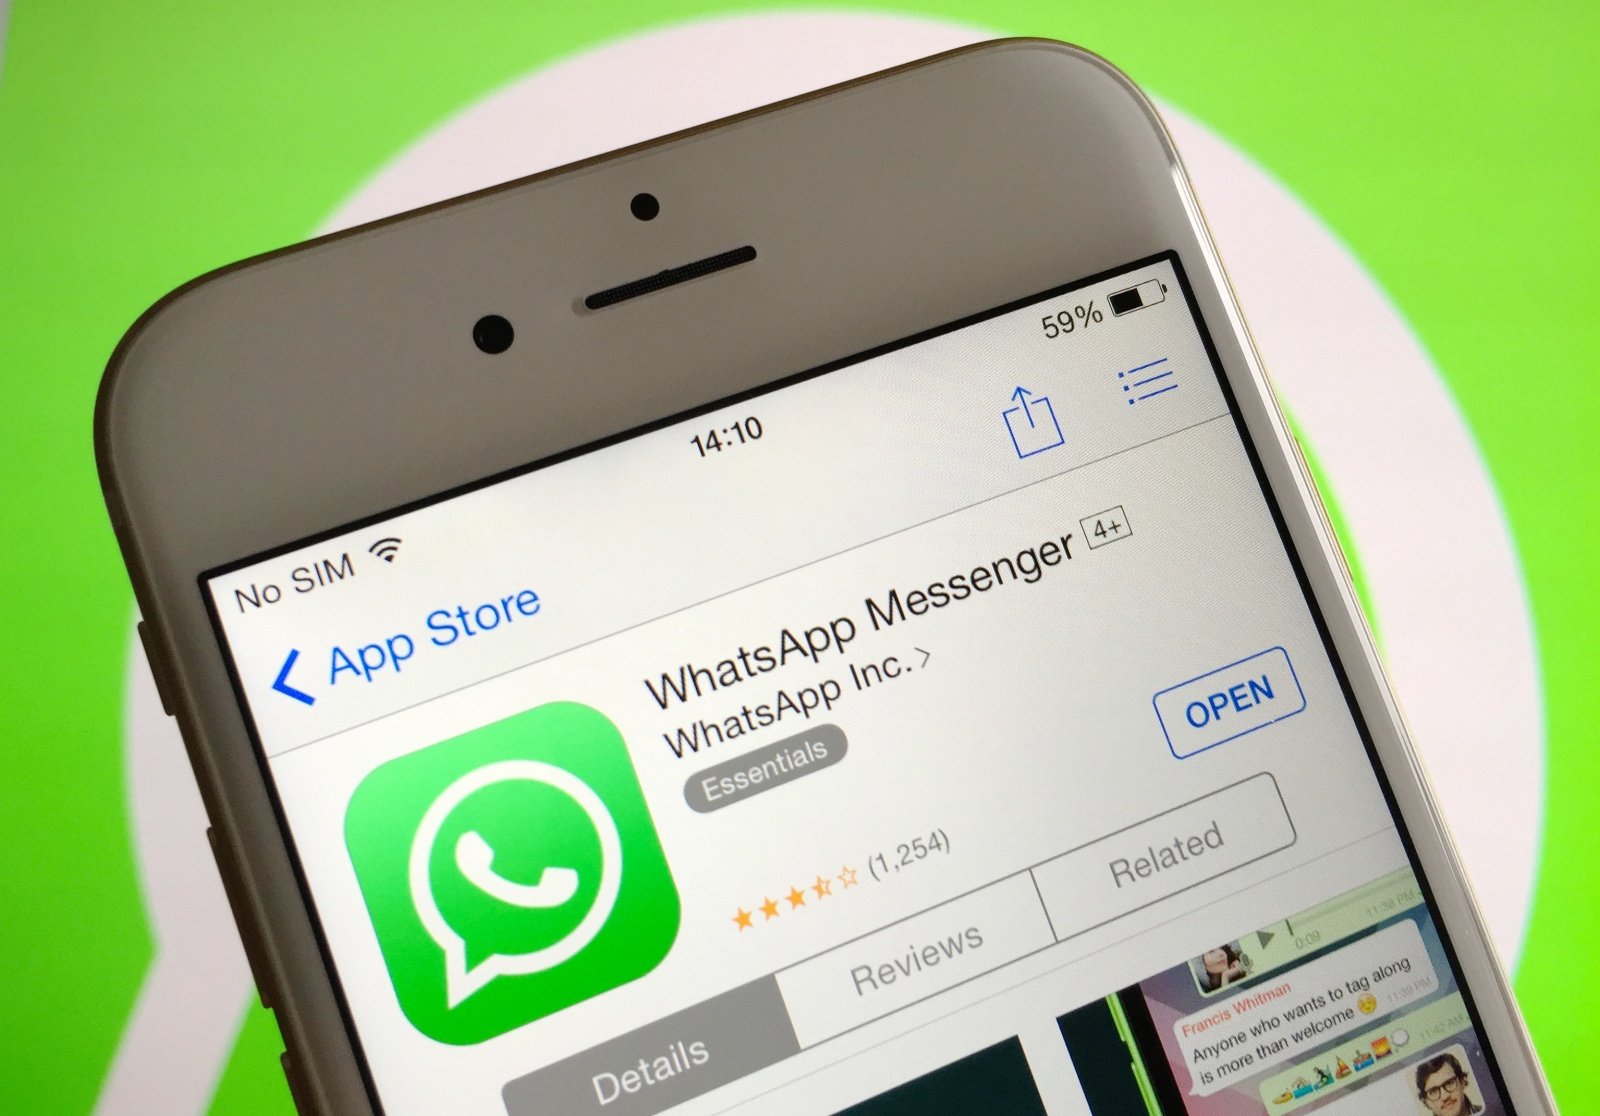 WhatsApp on iOS